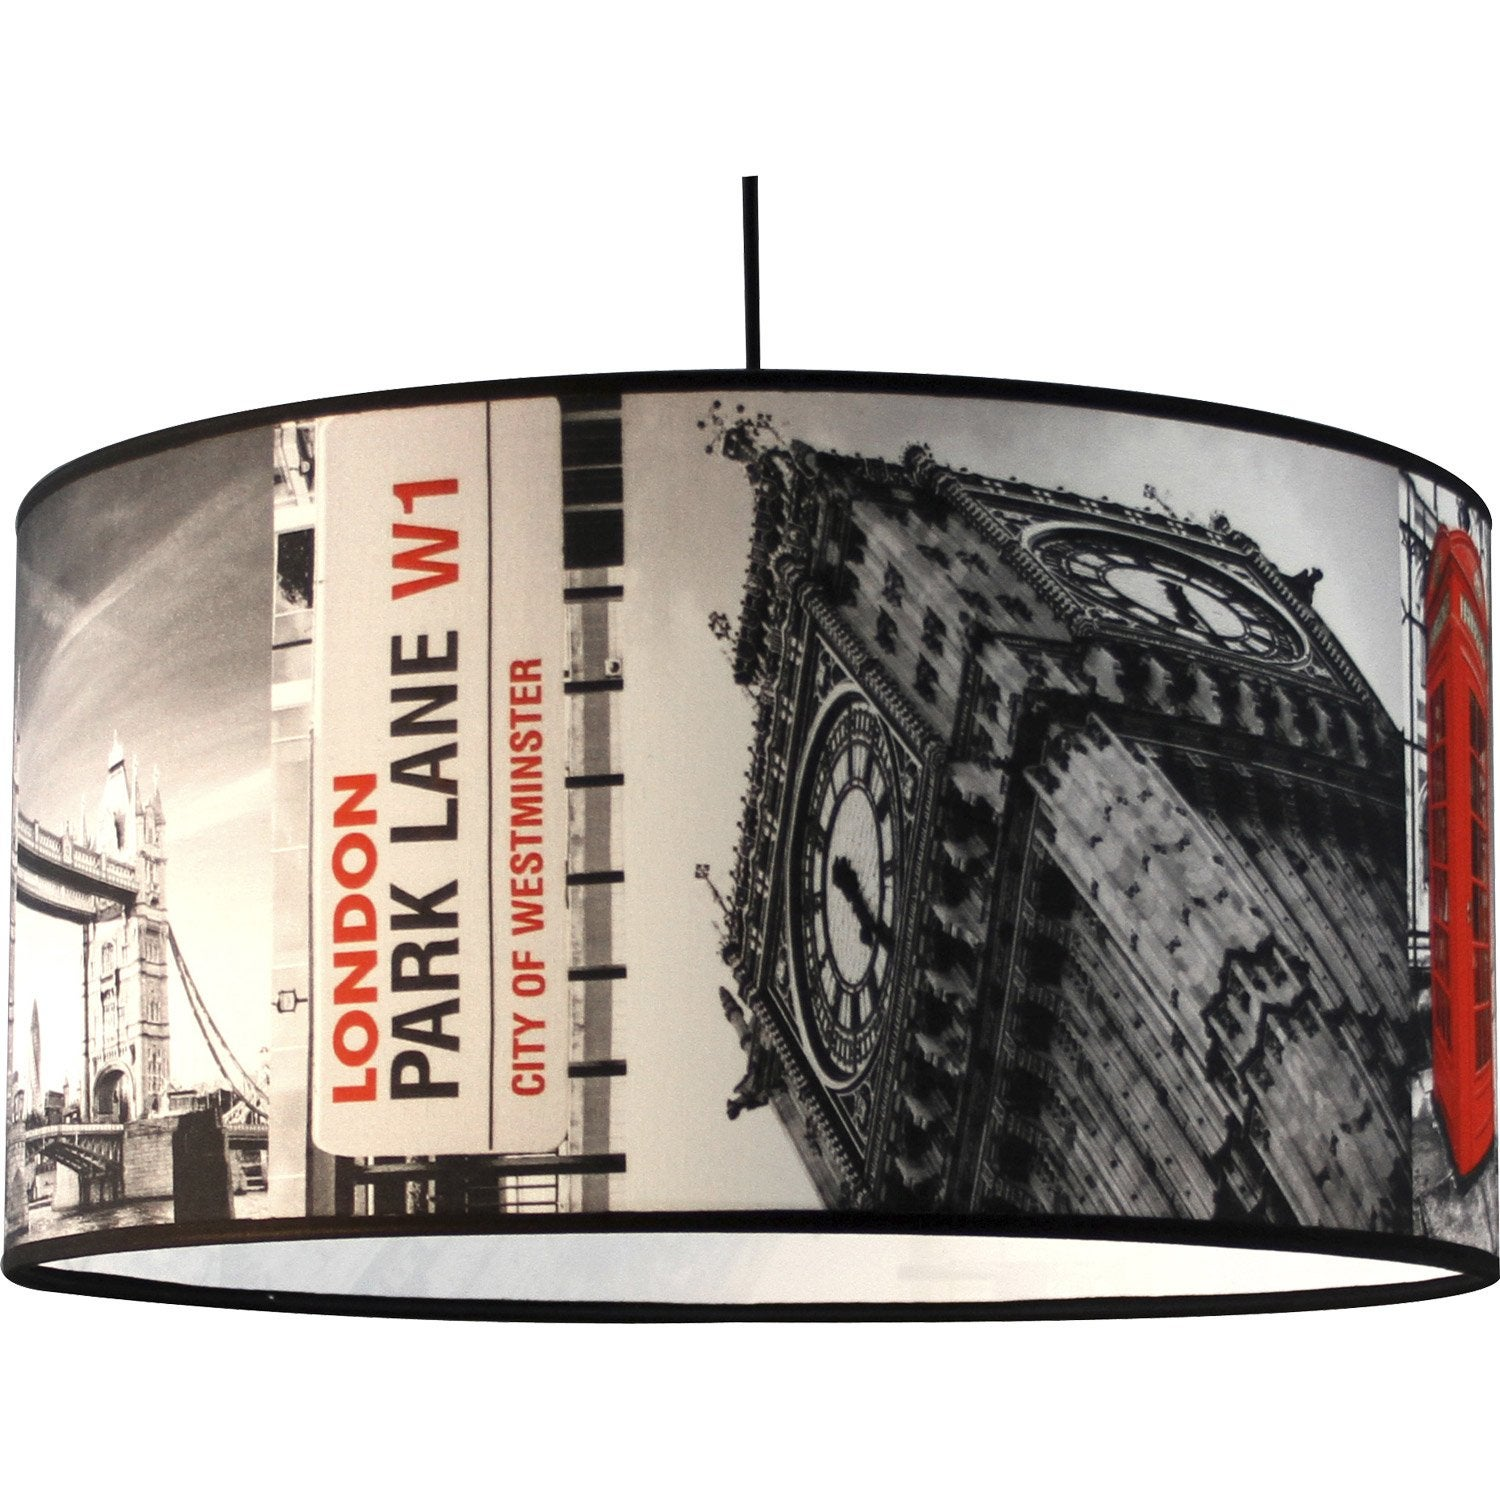 Suspension e27 city londres big ben tissus multicolore 1 x 60 w metropolight - Suspension new york leroy merlin ...